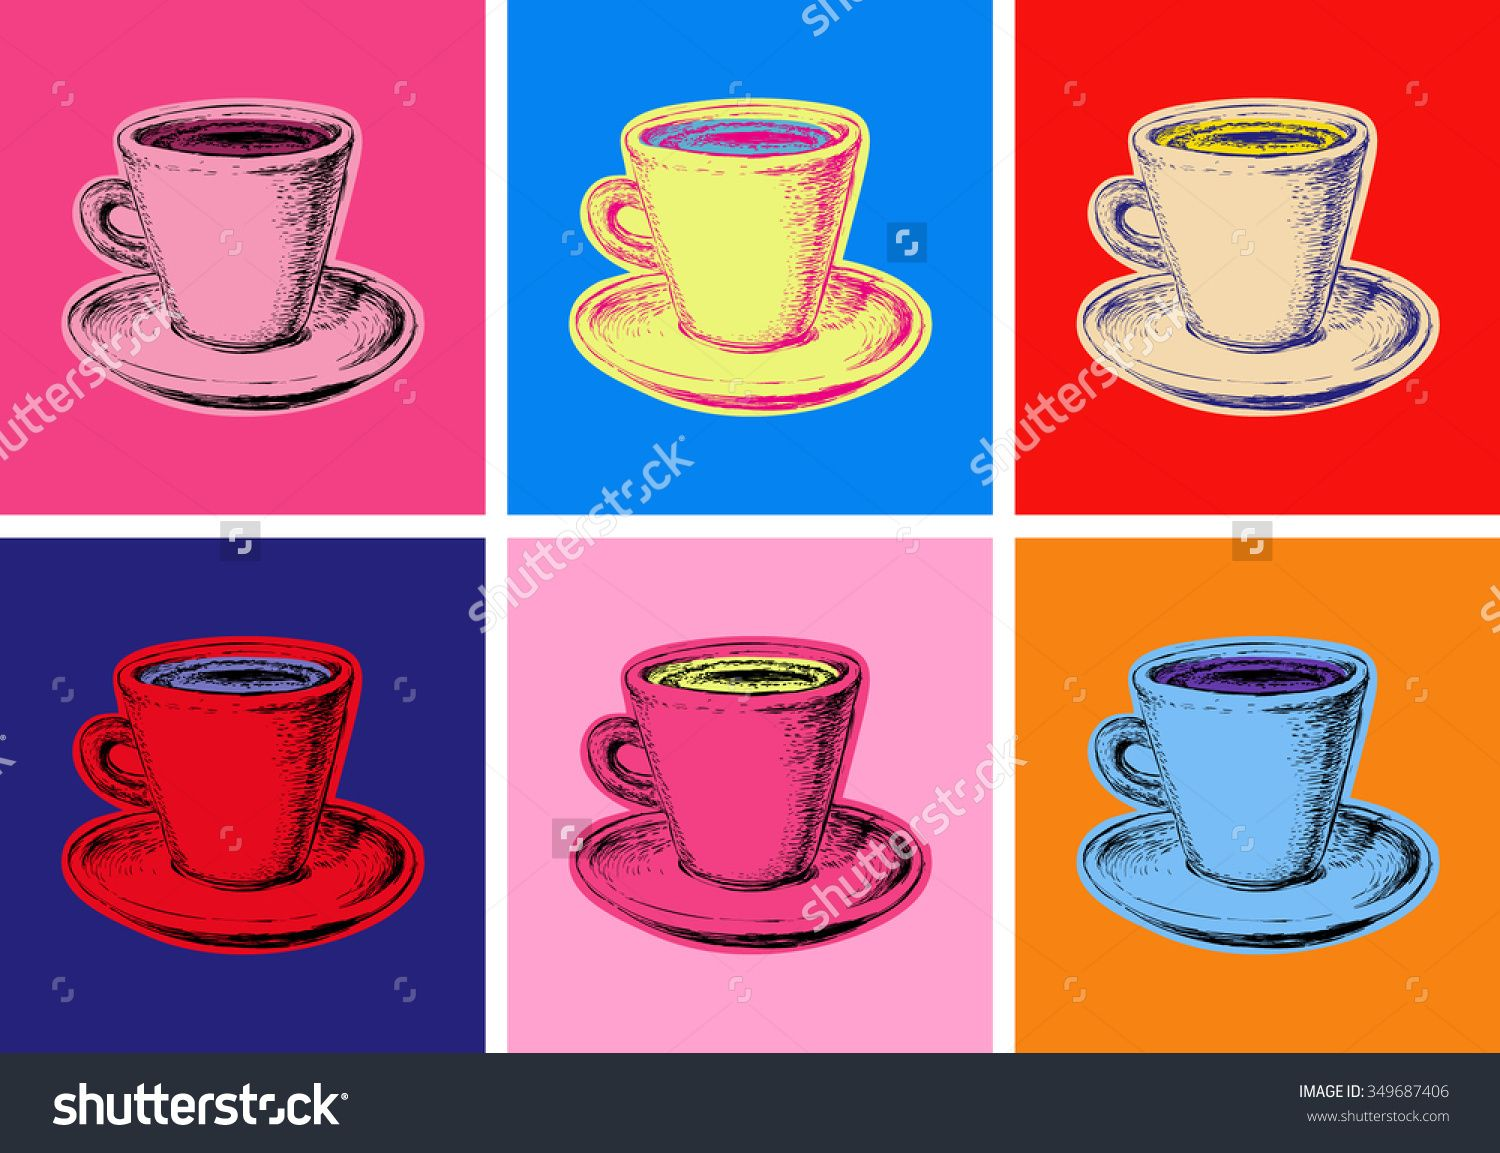 Image Result For Pop Art Andy Warhol Pop Art Pinterest Pop Art And Warhol